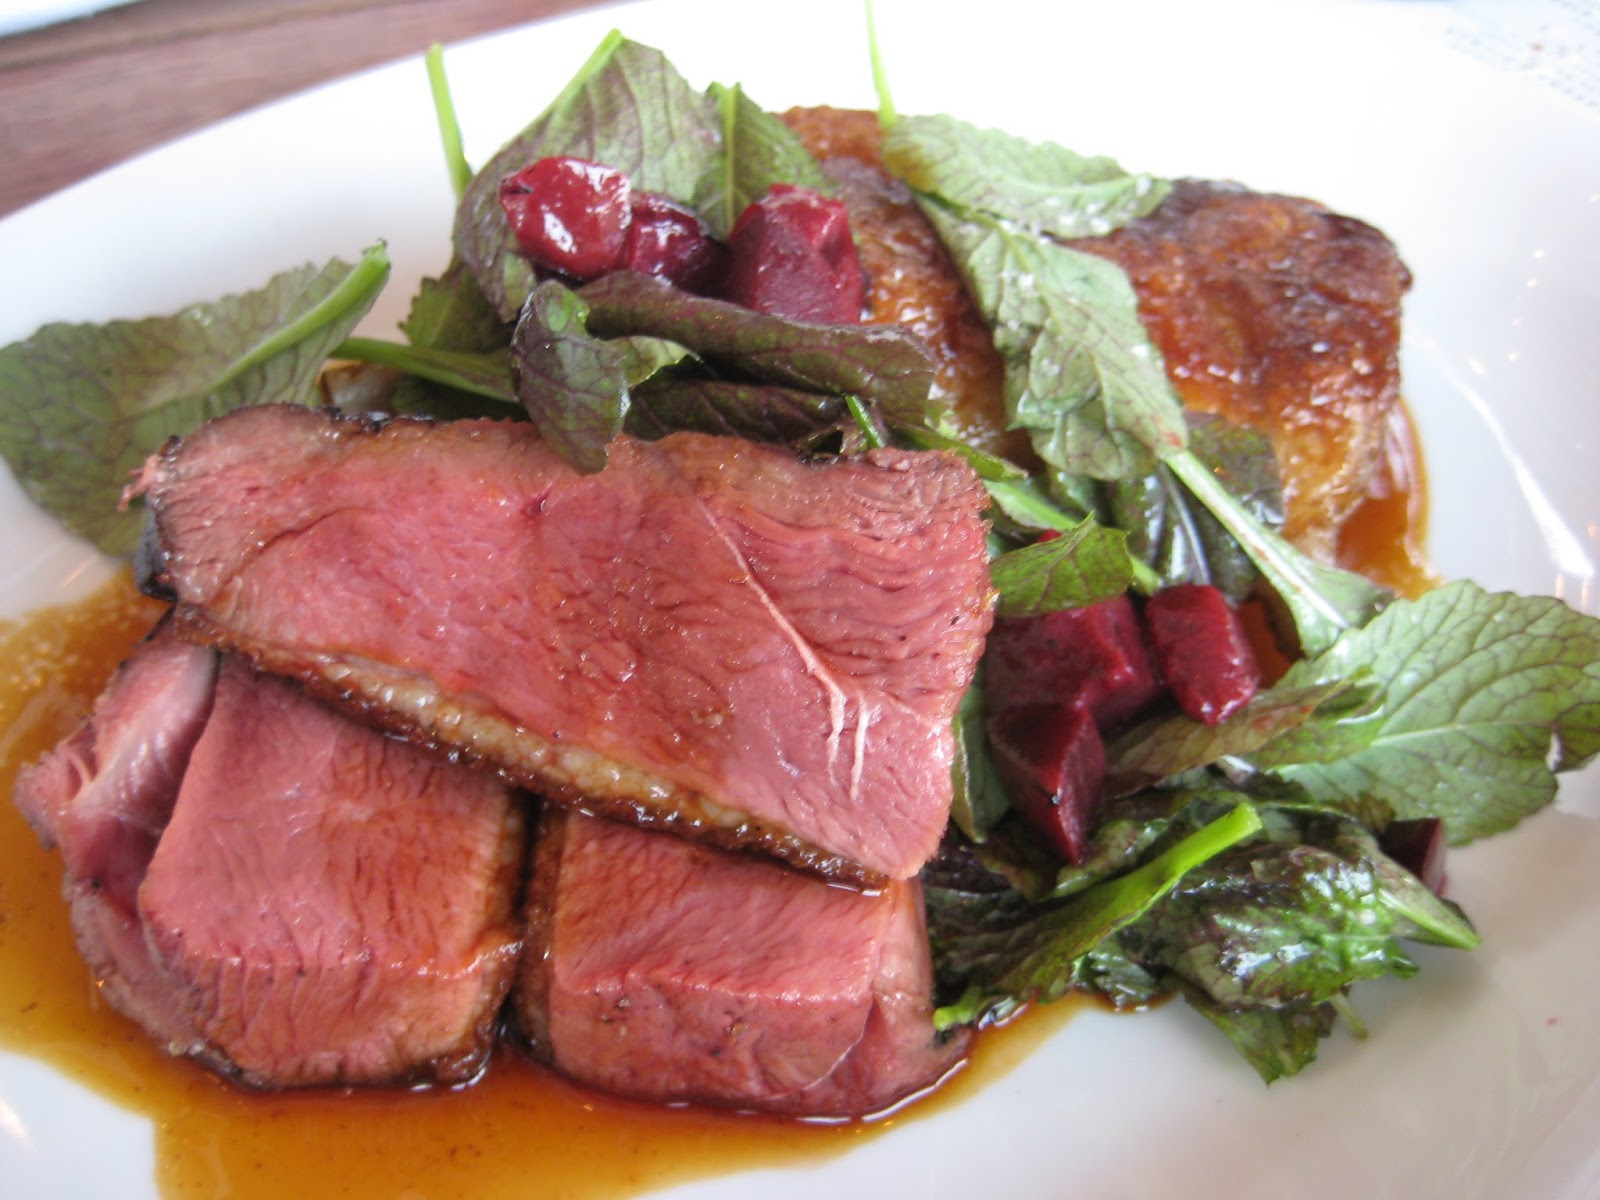 Beef curtains - Roast Pekin Duck Crispy Leg Spit Roasted Breast Red Mustard Greens Plums This Was The Real Winner On This Visit Generous Amount Of Duck And Spot On